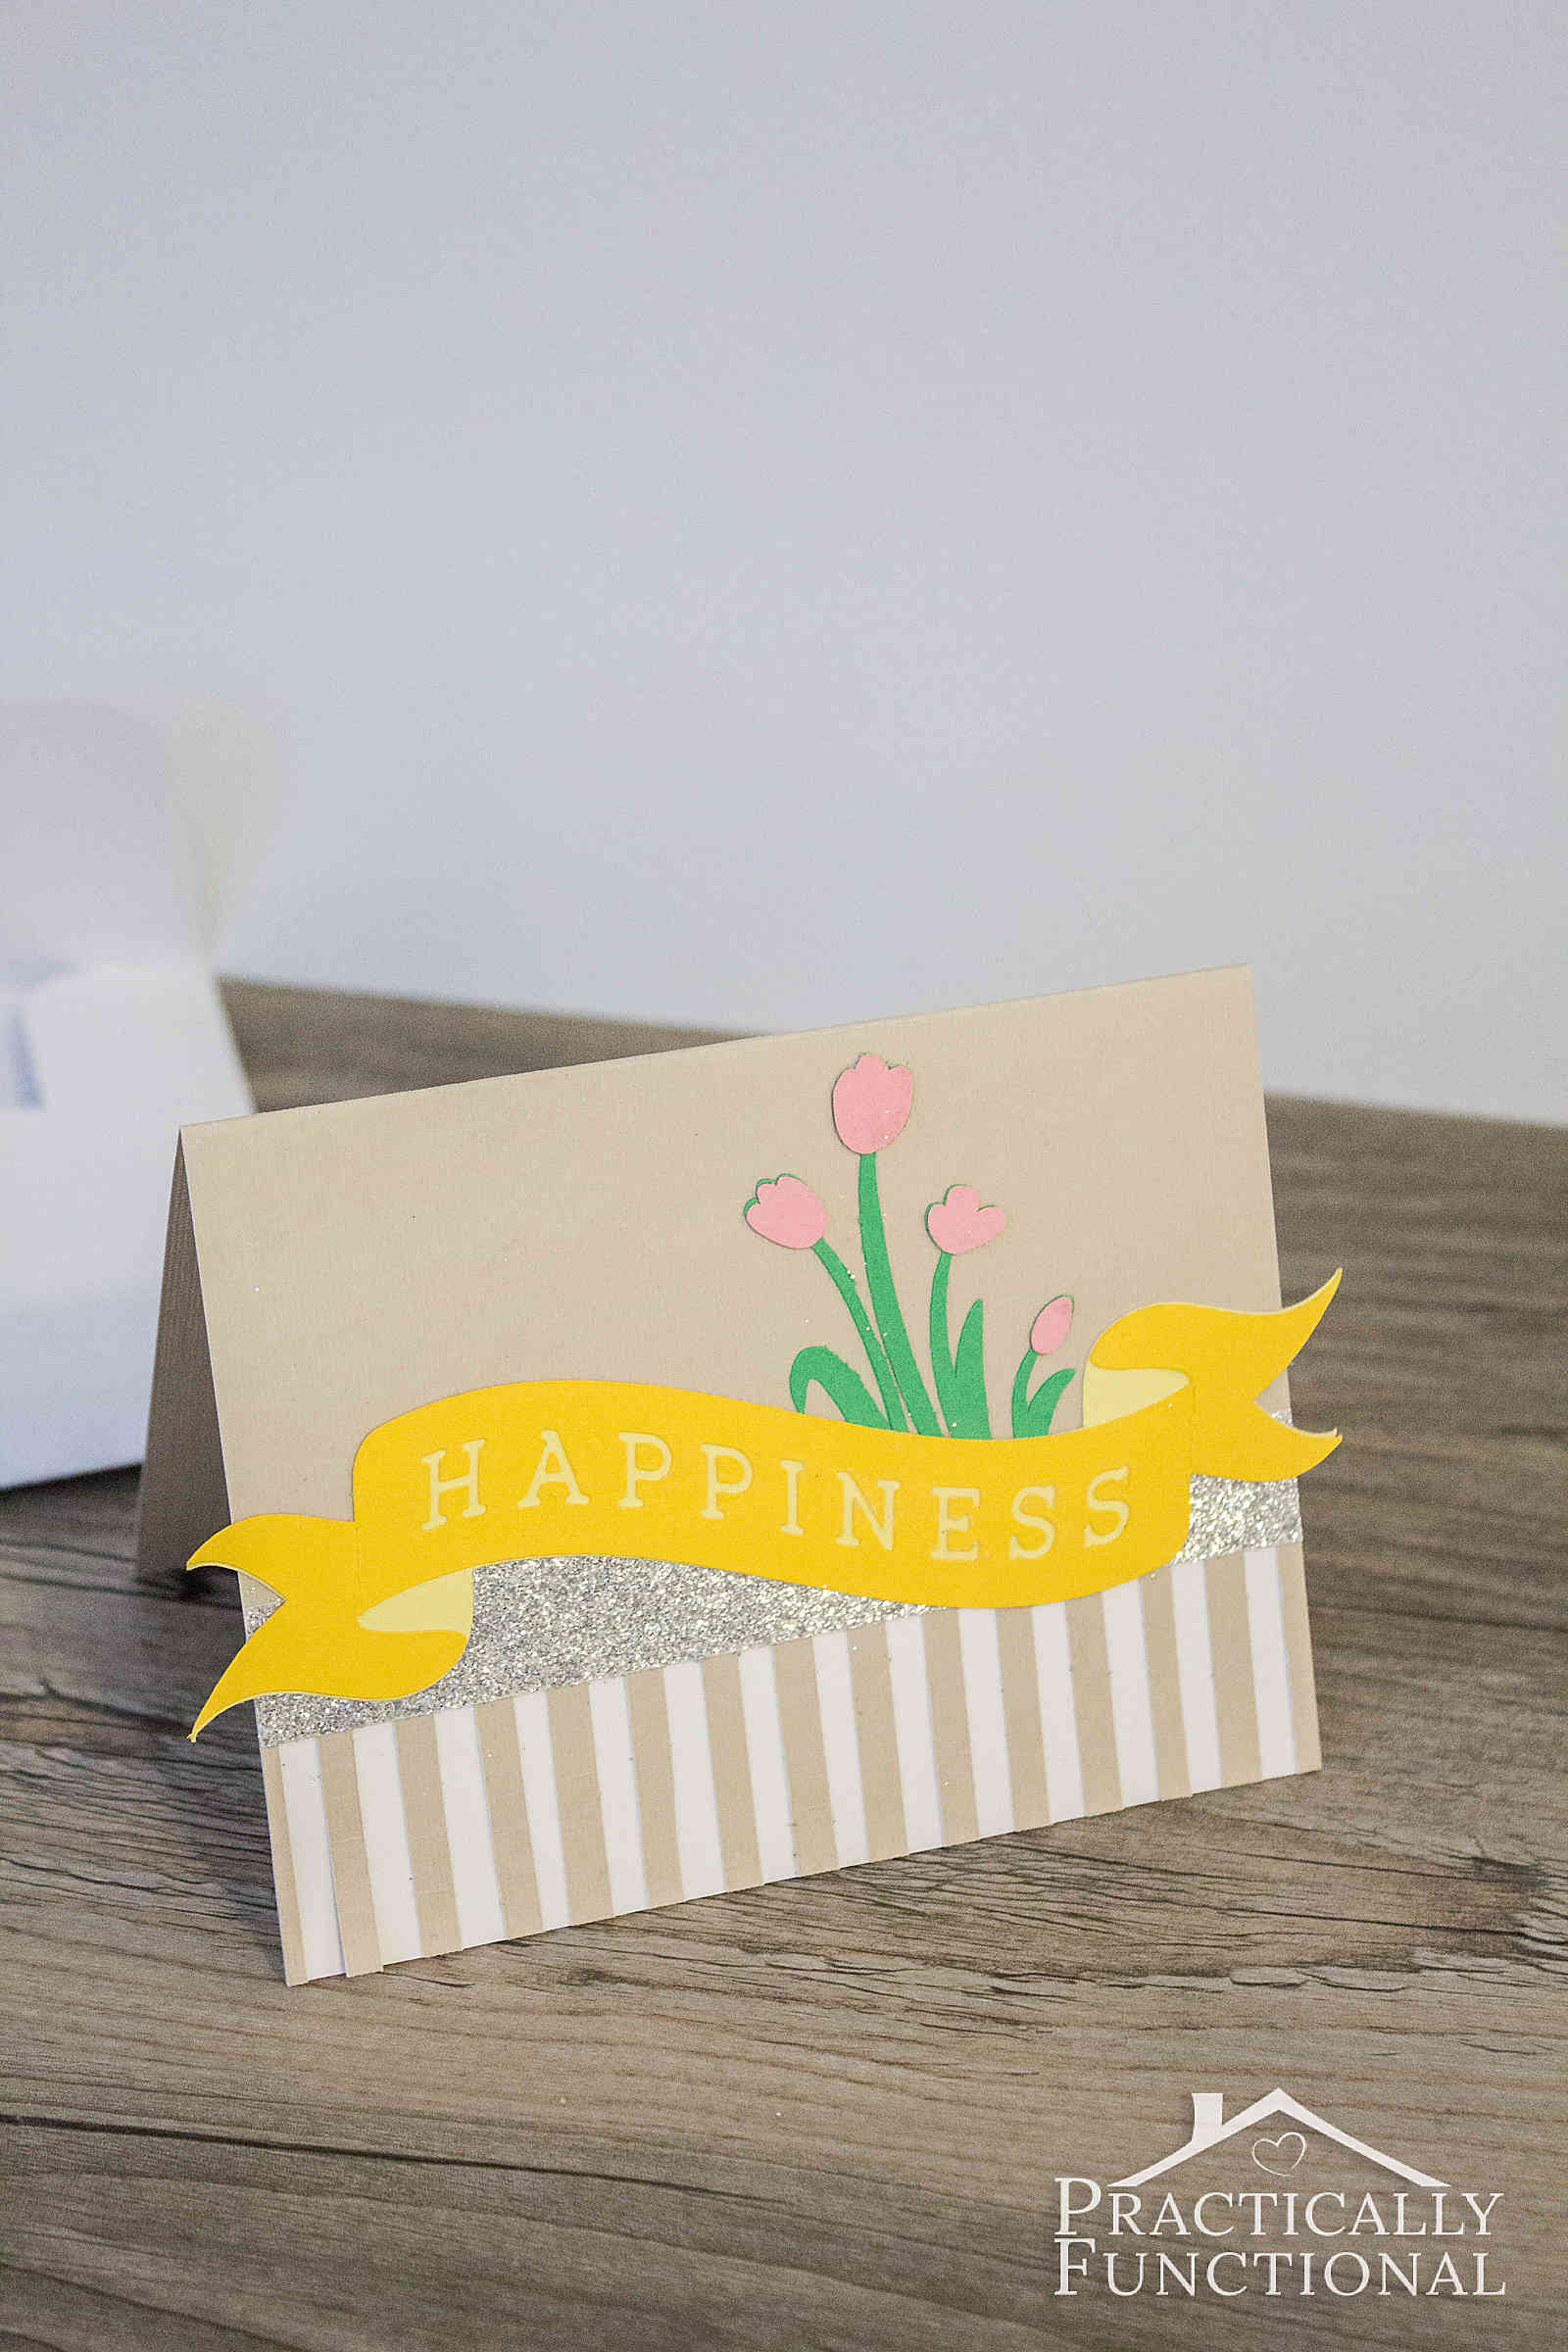 Make a cute Happiness card in under 20 minutes with a Cricut cutting machine!